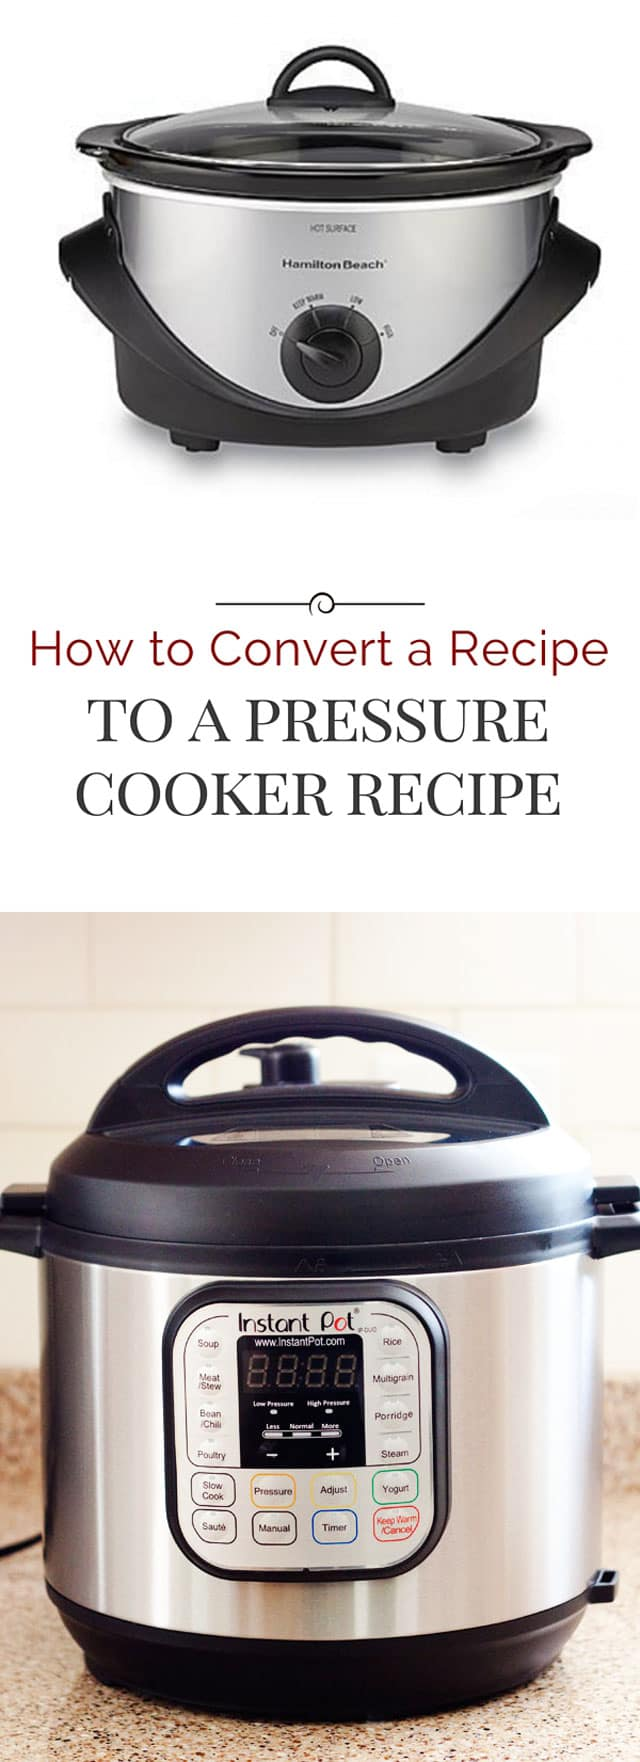 I'm Often Asked How To Convert A Recipe Into A Pressure Cooker Recipe